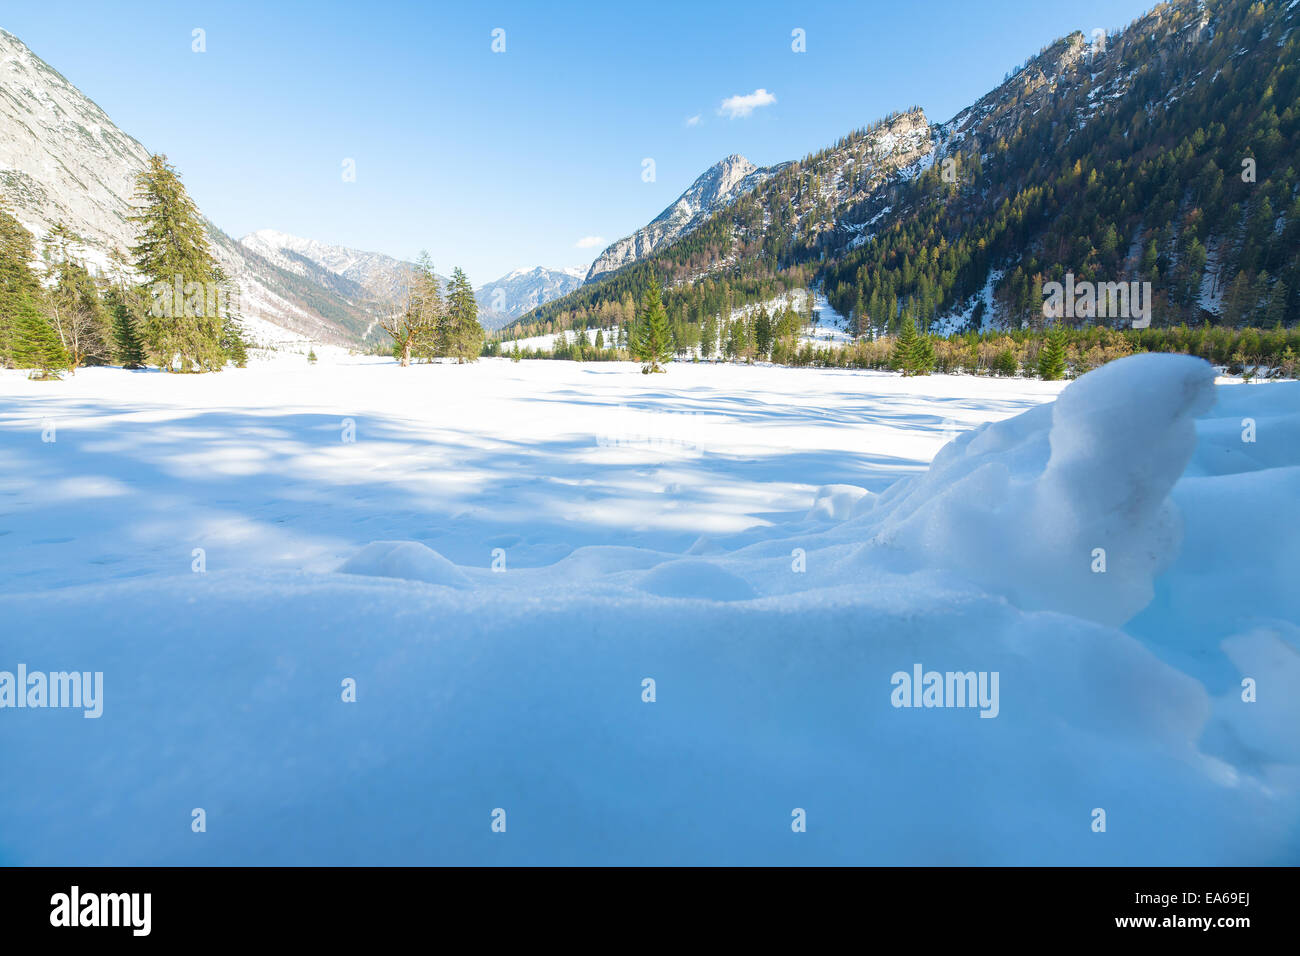 Snow fall early winter and late autumn. Alps landscape with snow capped mountains in the late autumn season. - Stock Image